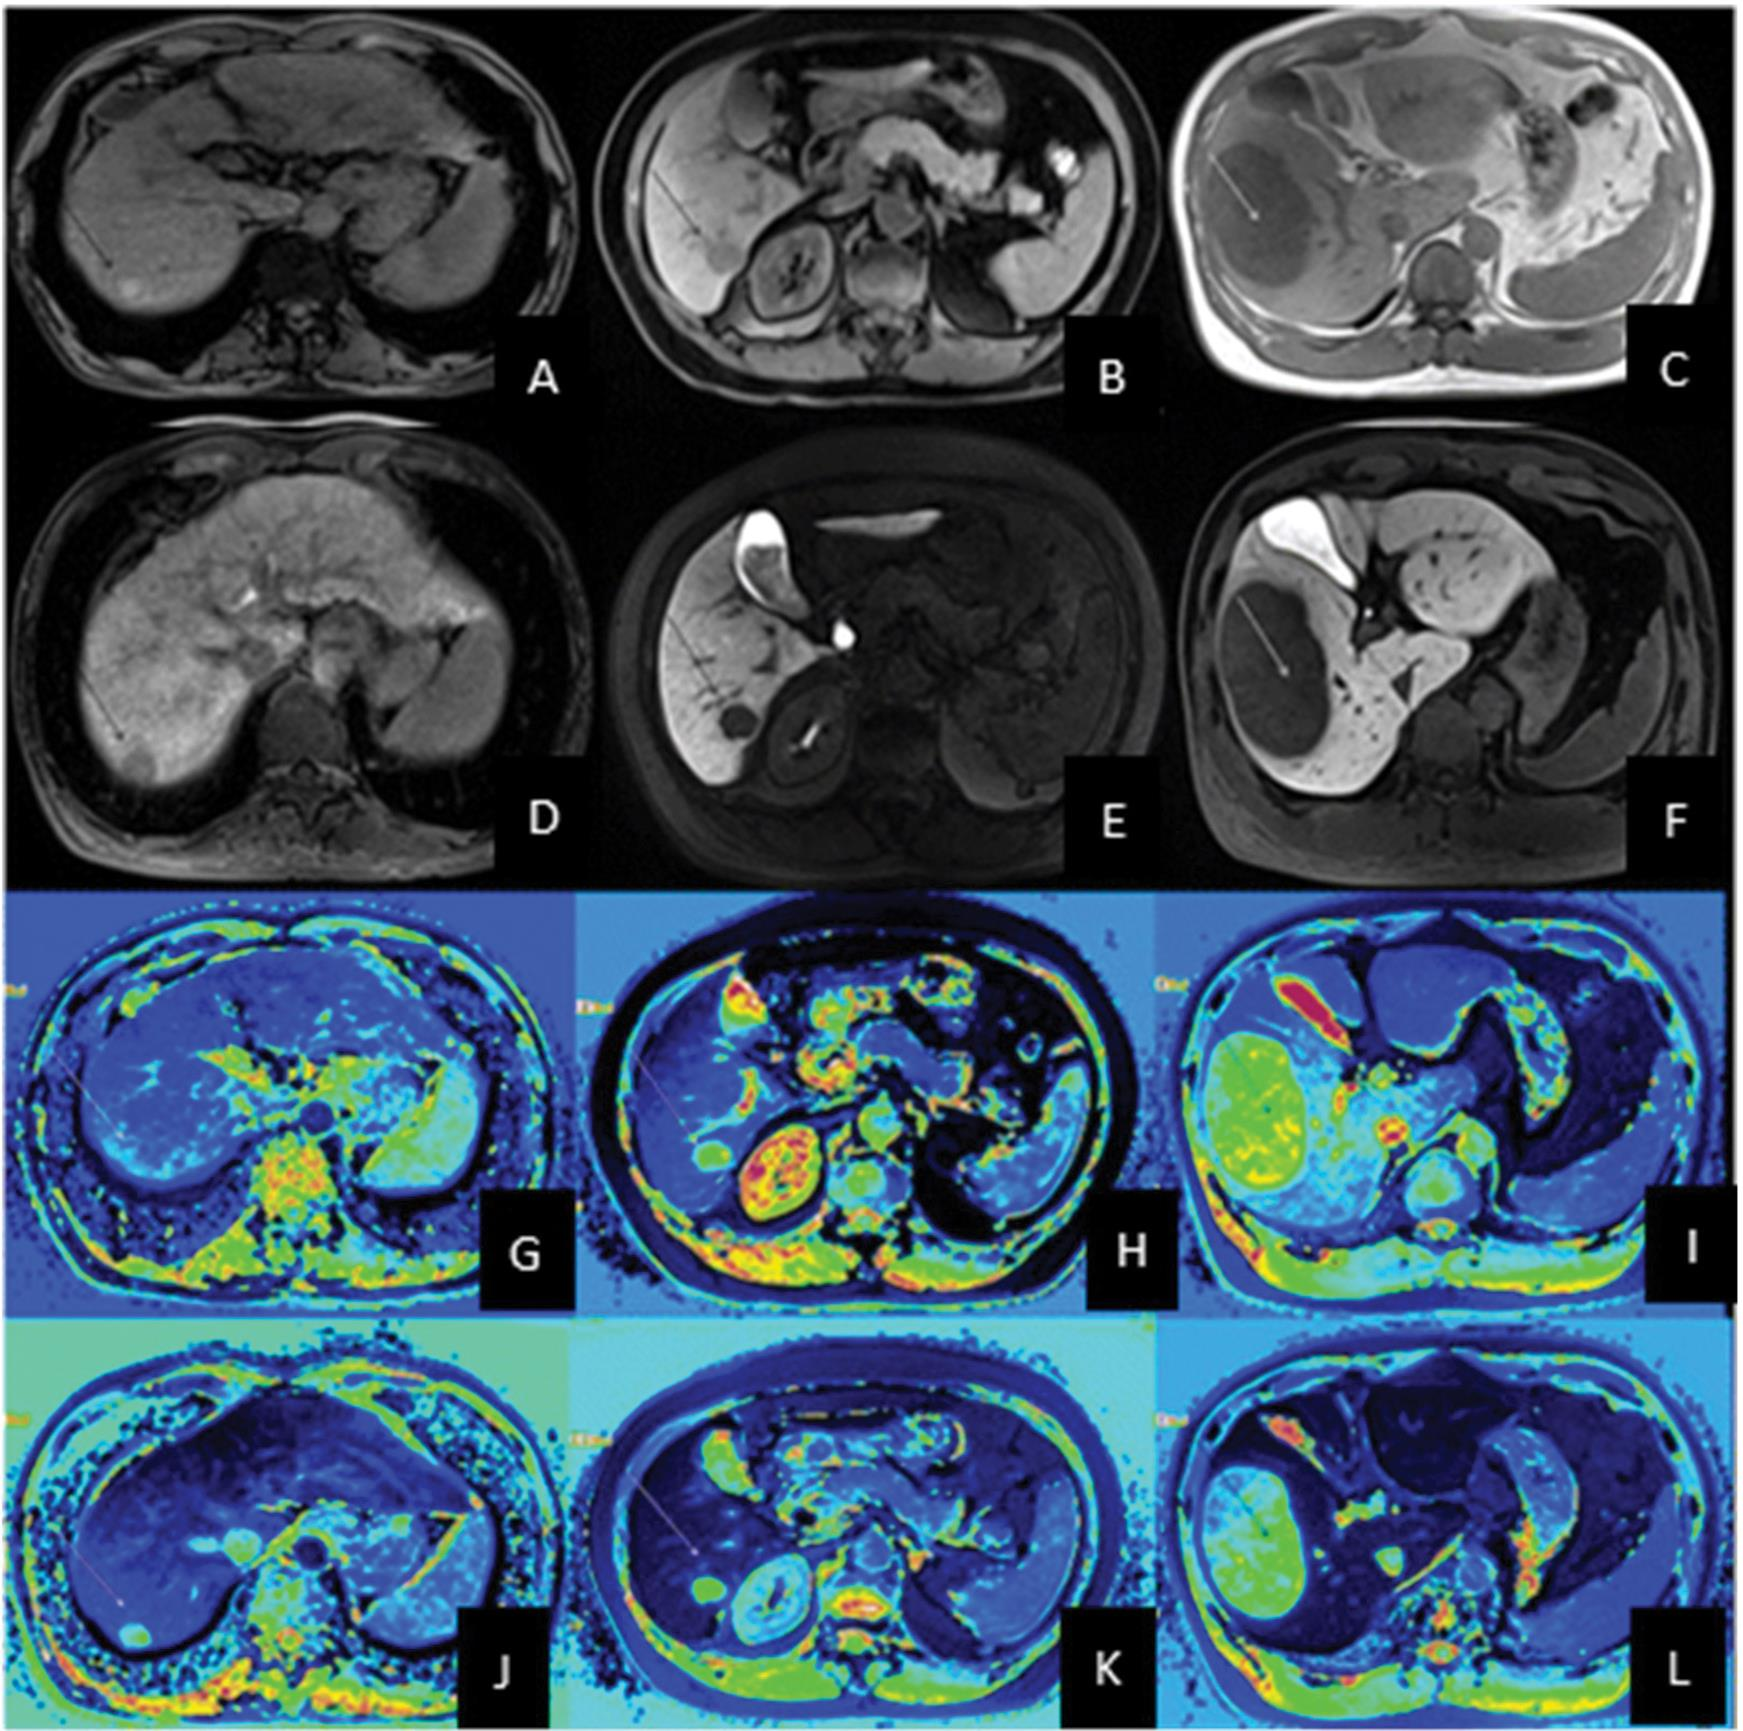 Magnetic resonance imaging of the abdomen of separate patients with low grade (column 1), intermediate grade (column 2) and high grade (column 3) hepatocellular carcinoma.